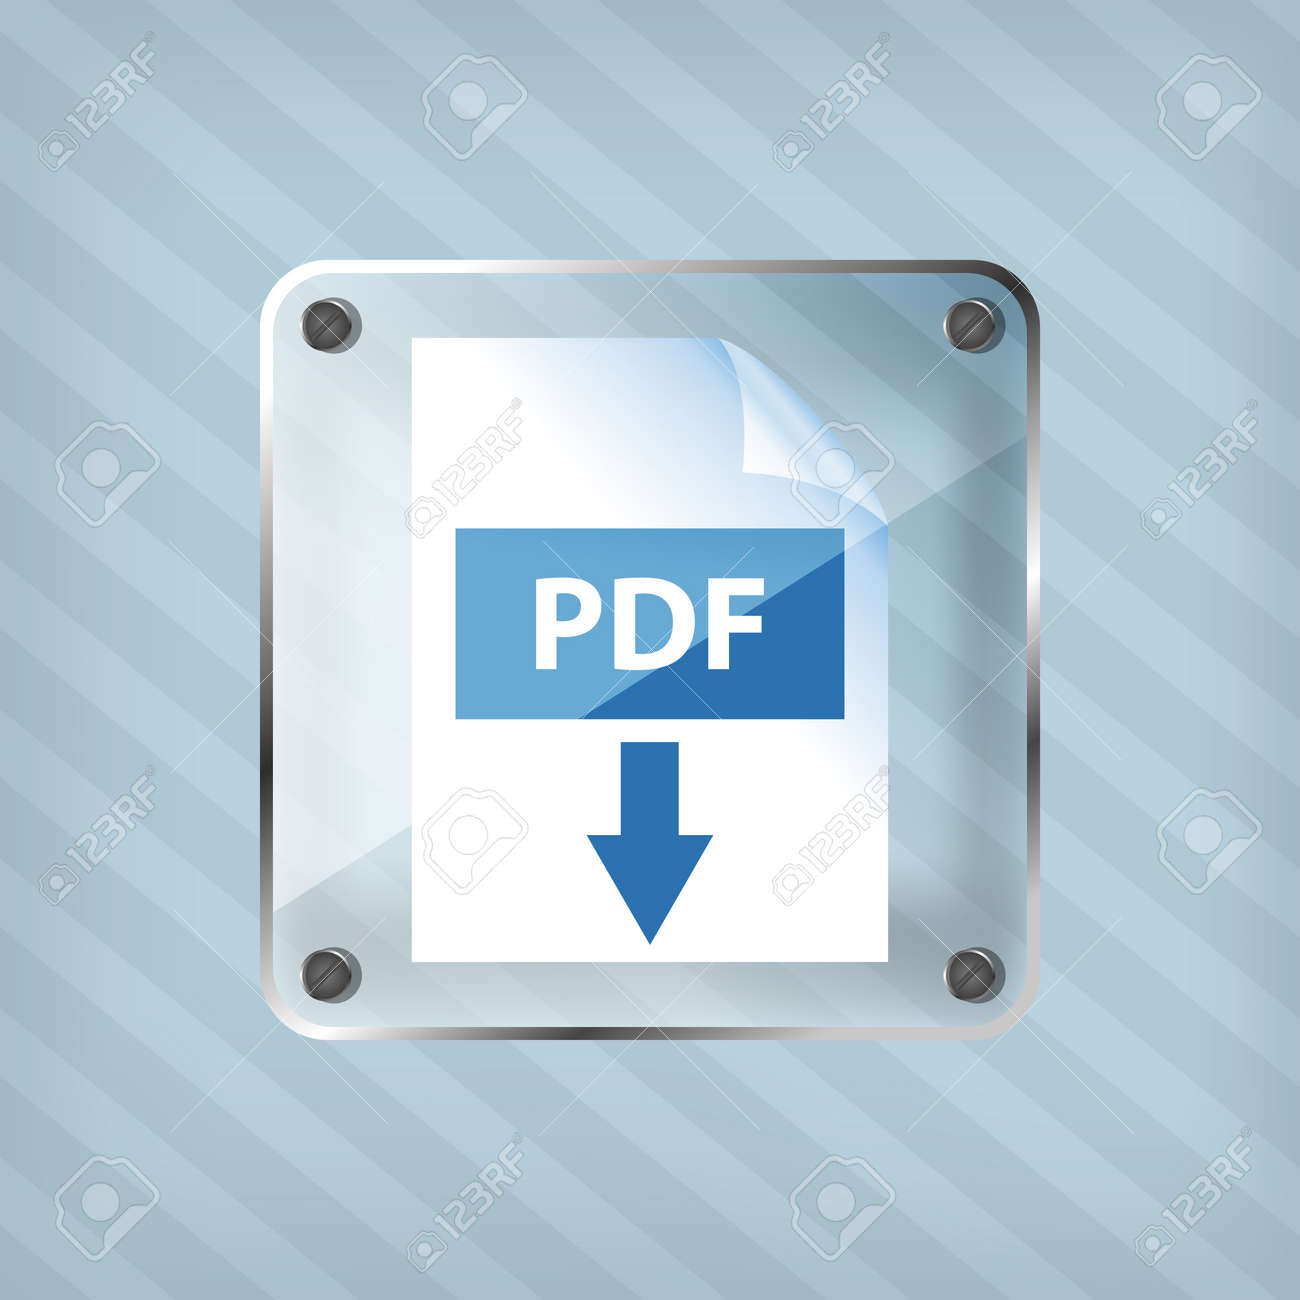 transparency pdf download icon on a striped background Stock Vector - 18861786